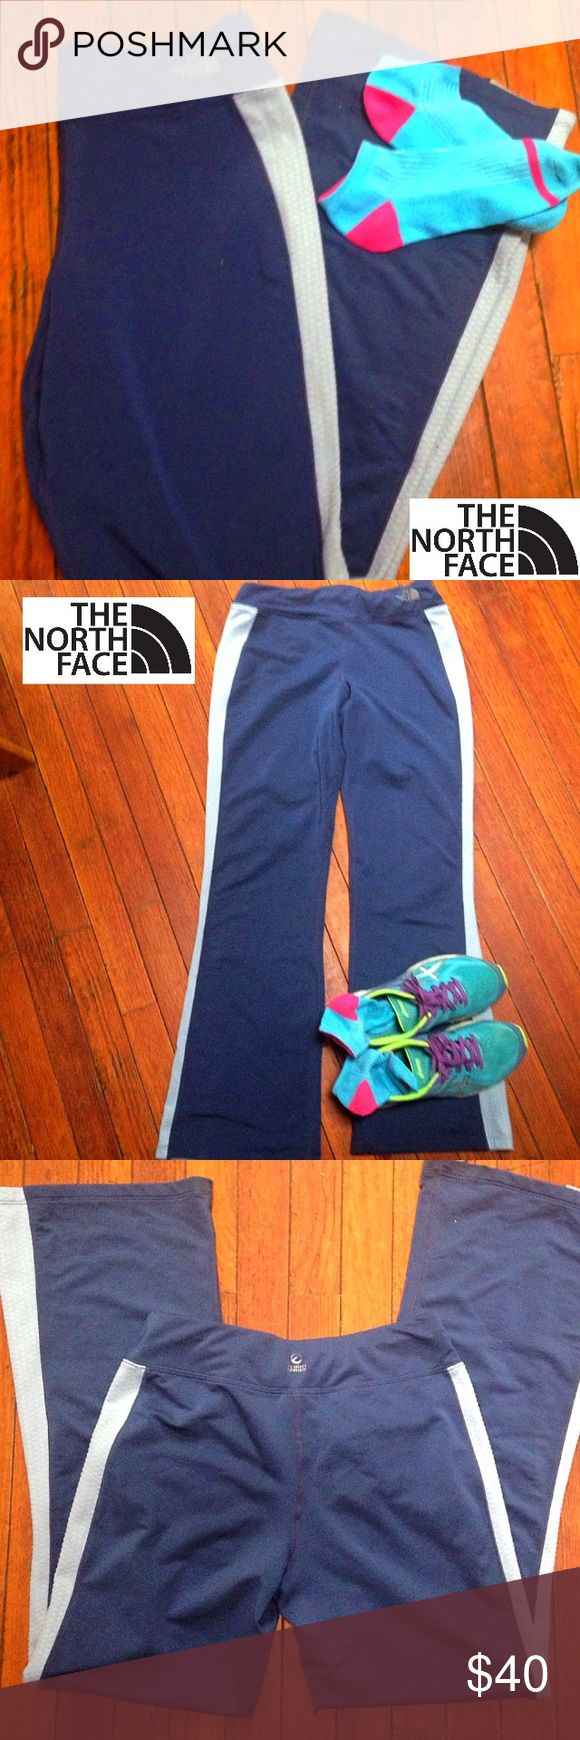 Women's size small The North Face Active Pants Flight series blue active poly/spandex pants by The North Face. Women's size small. Excellent condition. The North Face Jackets & Coats